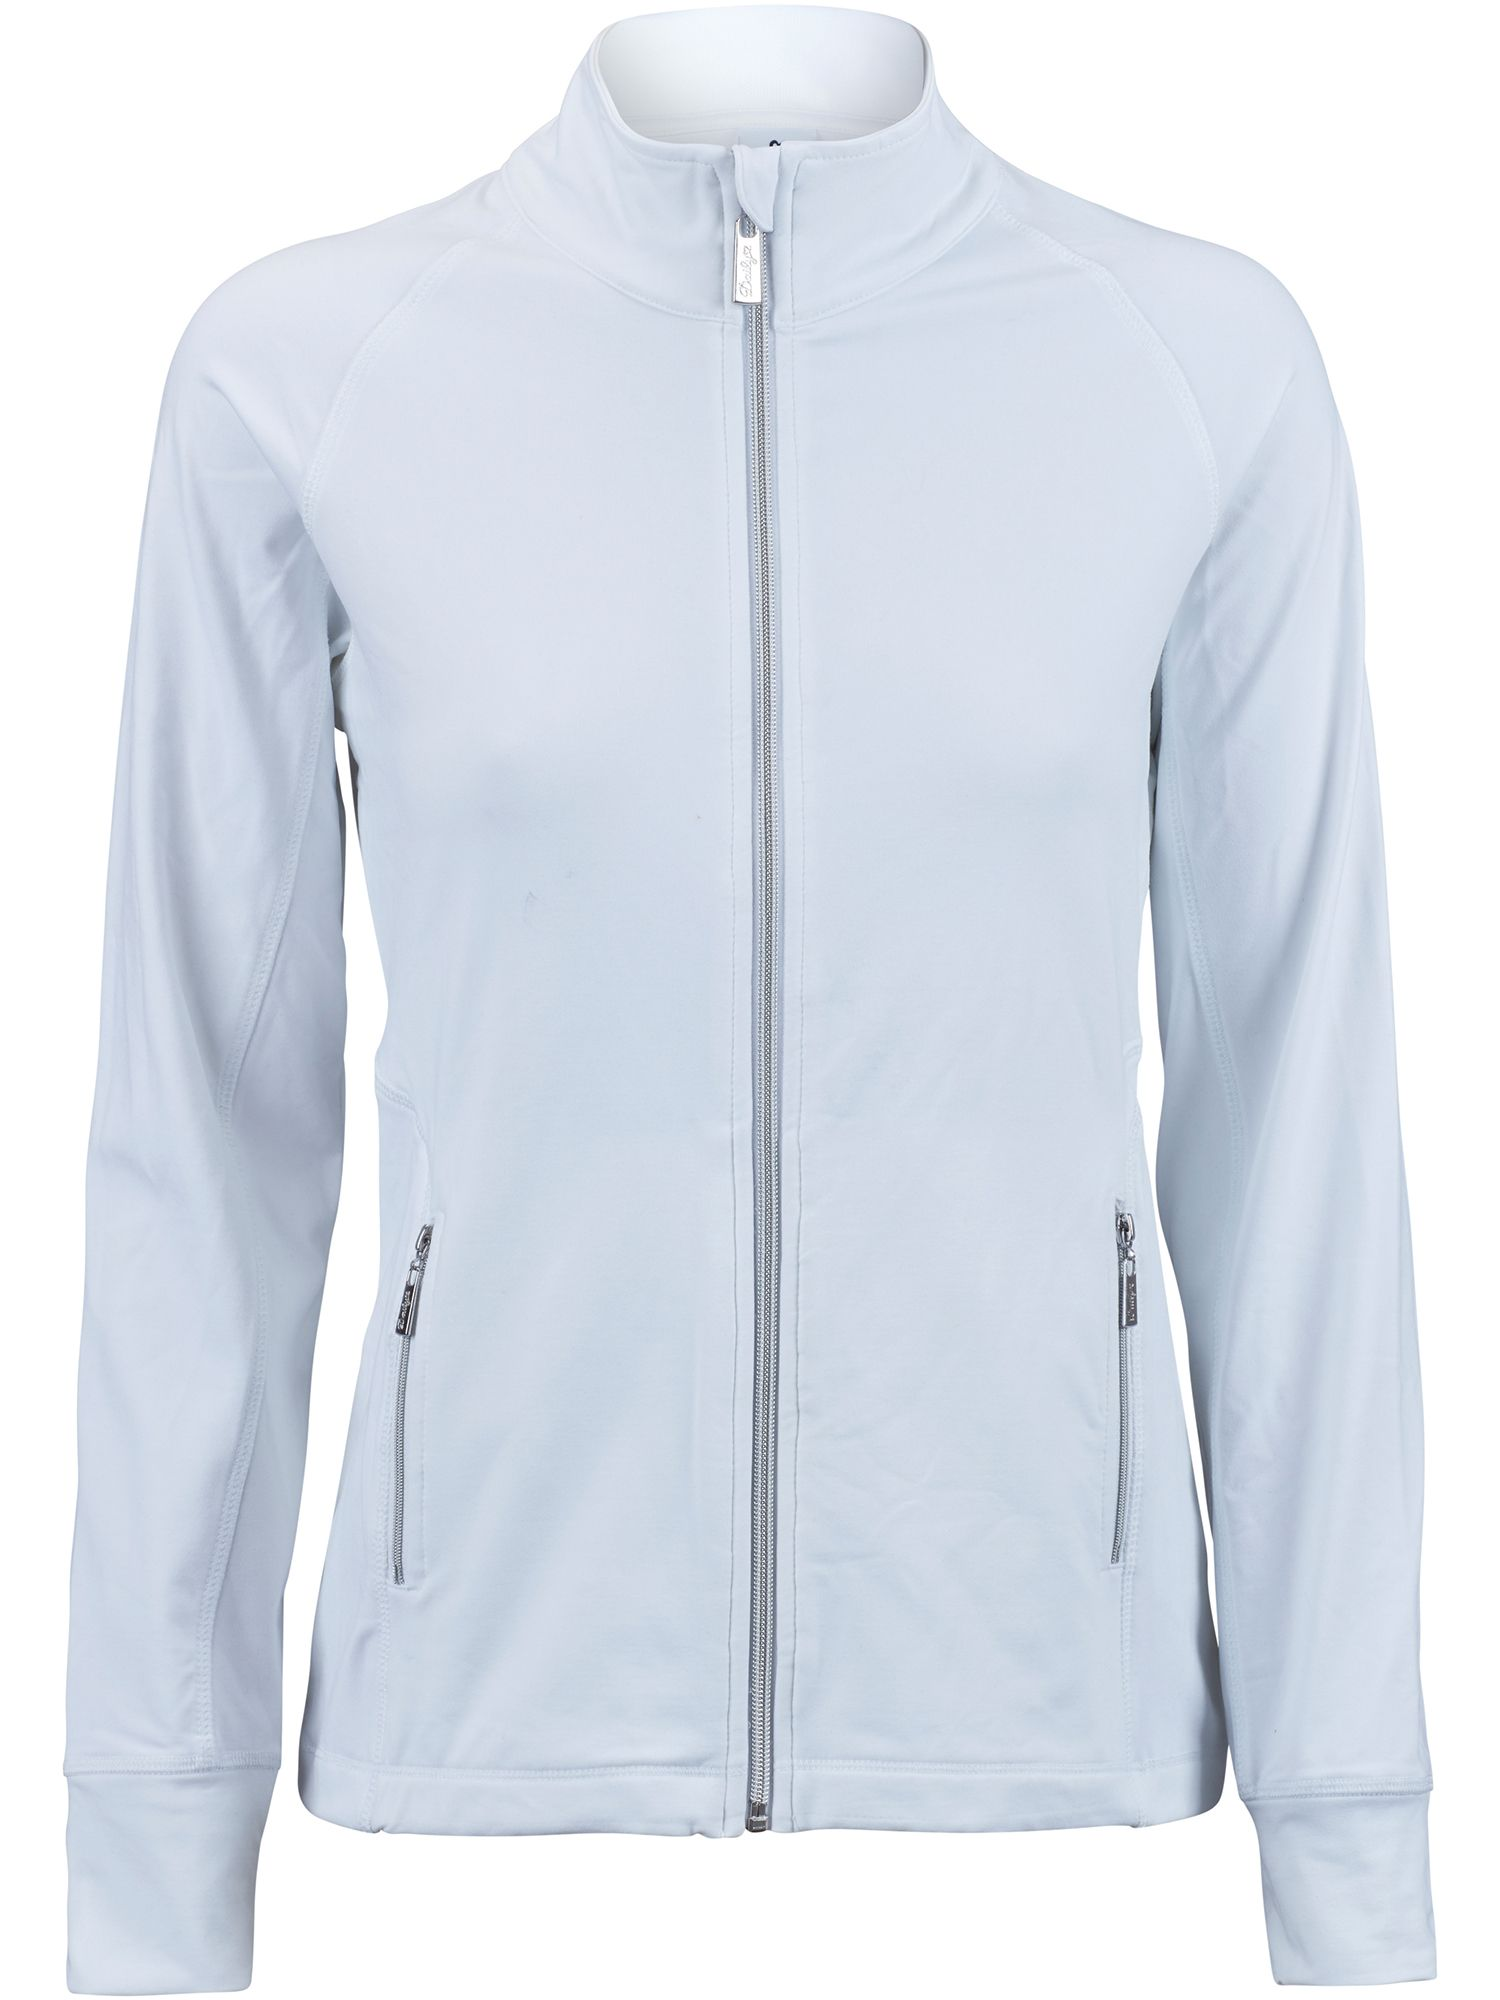 Daily Sports Bounce Jacket, White